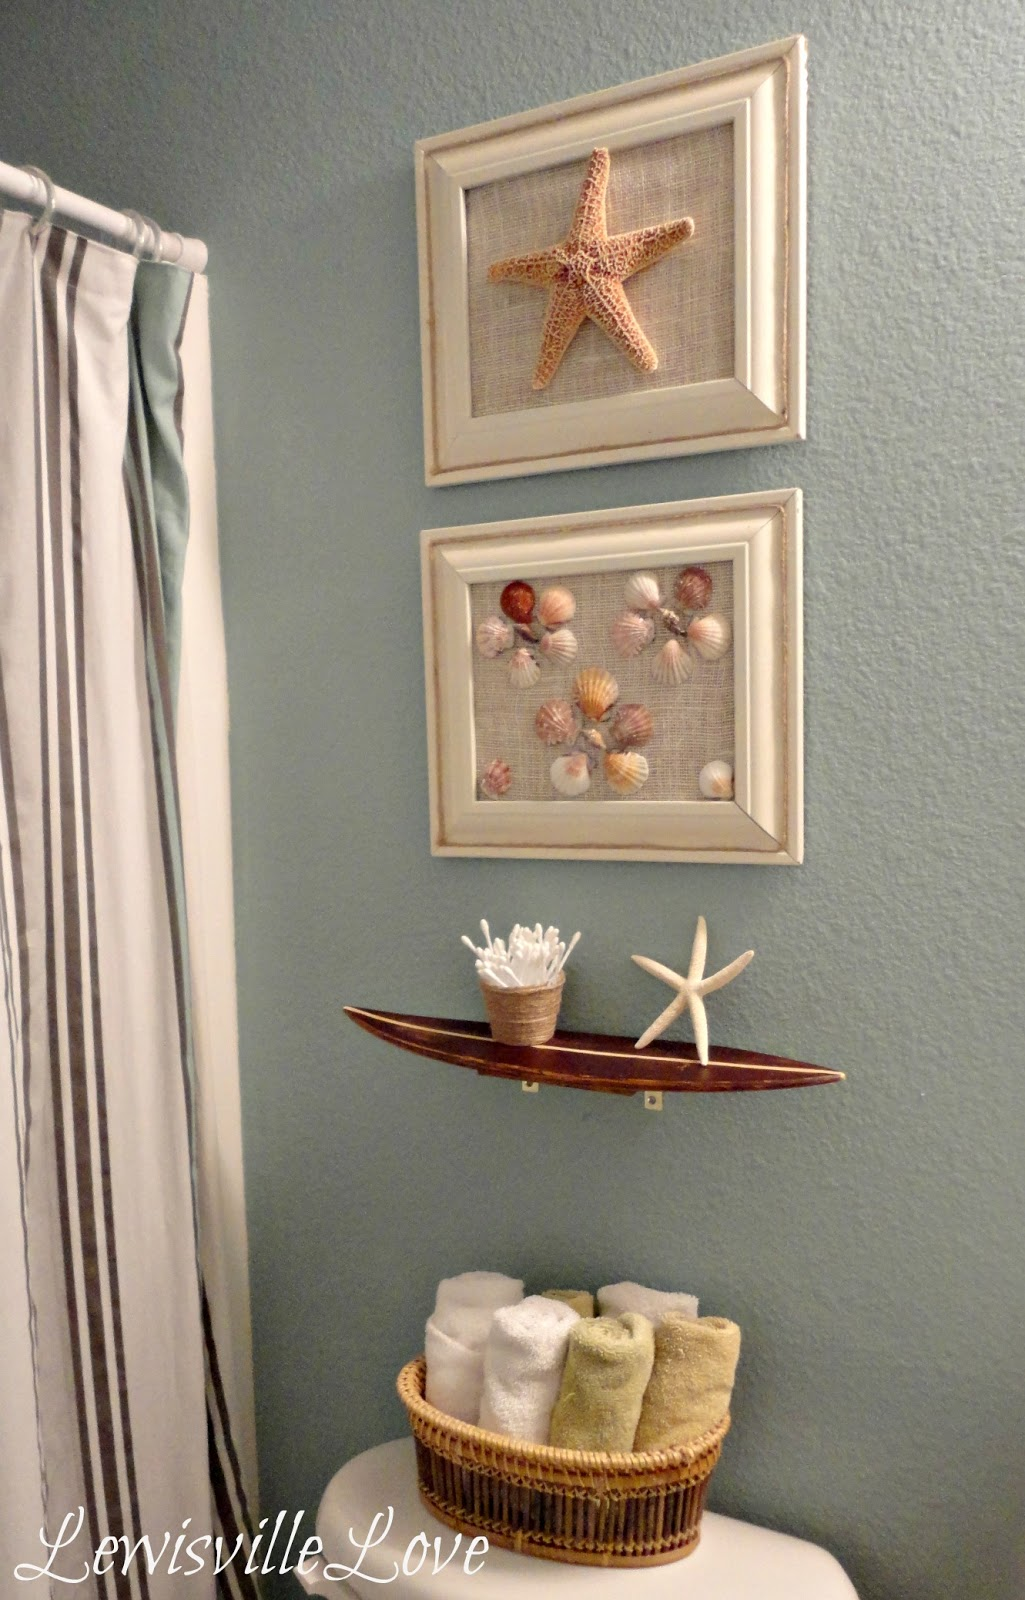 Http Lewisvillelove Blogspot Com 2012 12 Beach Theme Bathroom Reveal Html